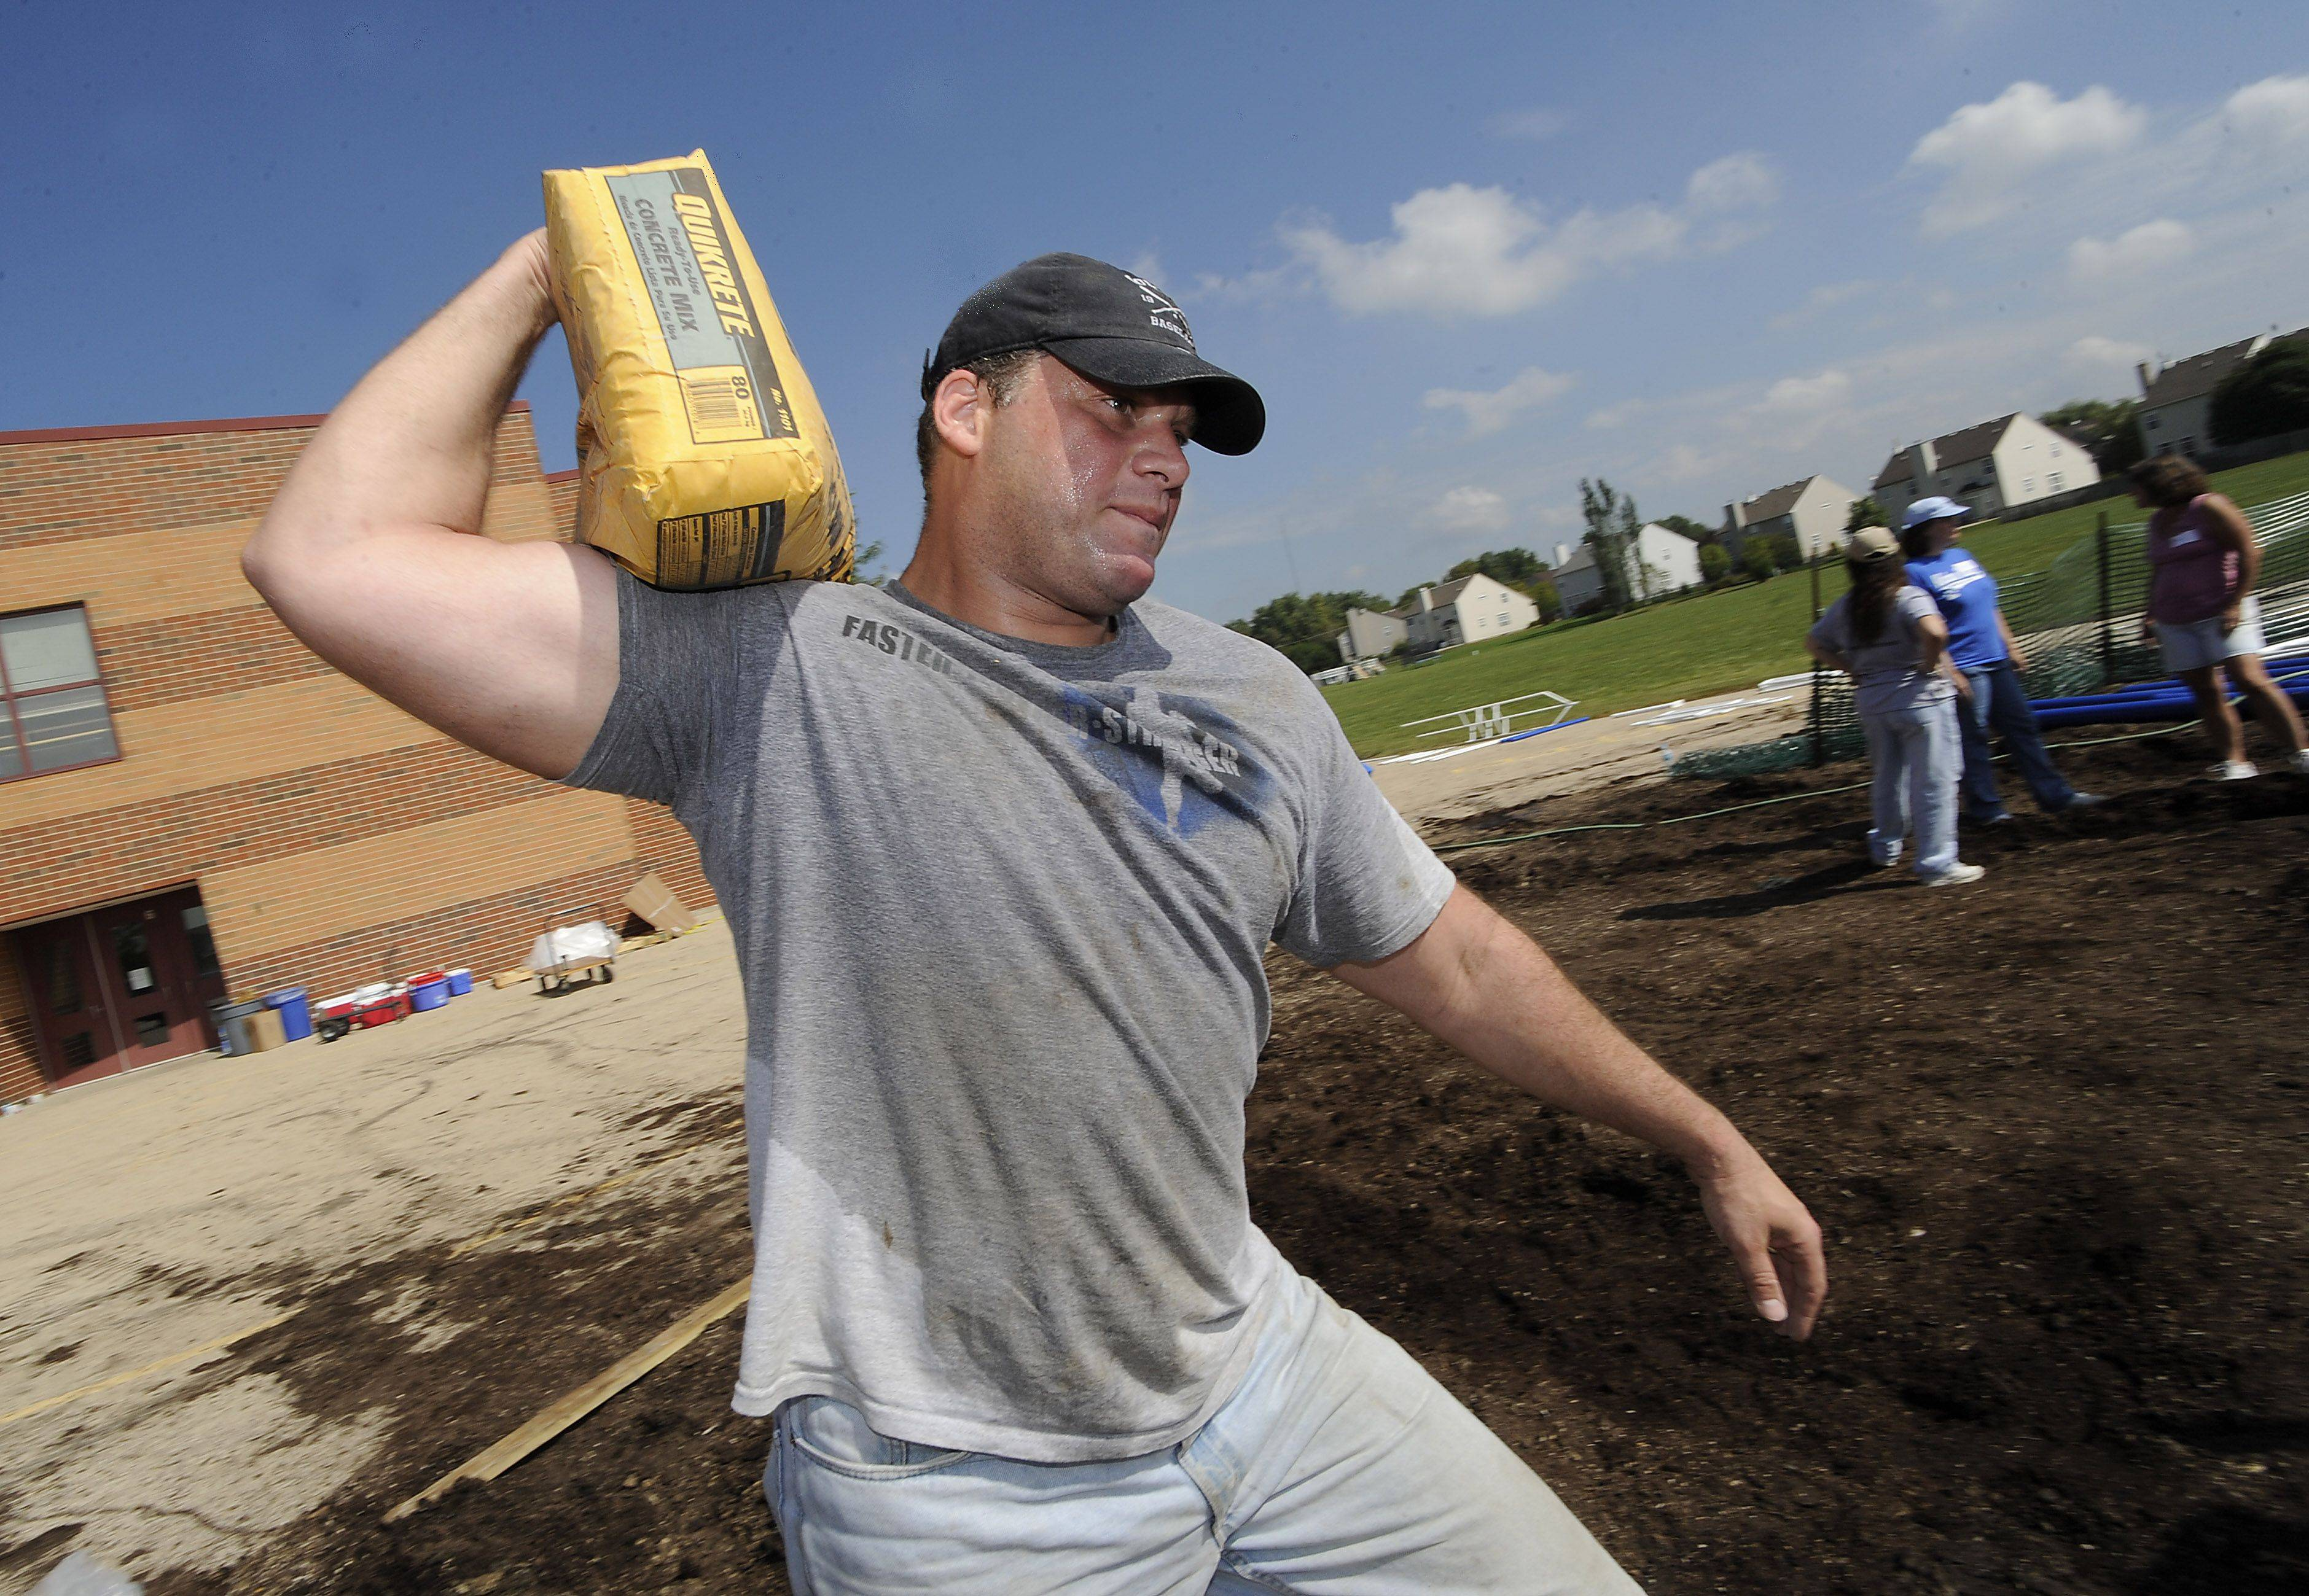 Joe Abbate of Bartlett does the heavy lifting of 80-pound bags of concrete mix as he and other parents of Nature Ridge Elementary School in Bartlett work recently to build a new playground that was PTO-funded for all the kids in the school, including students with disabilities.